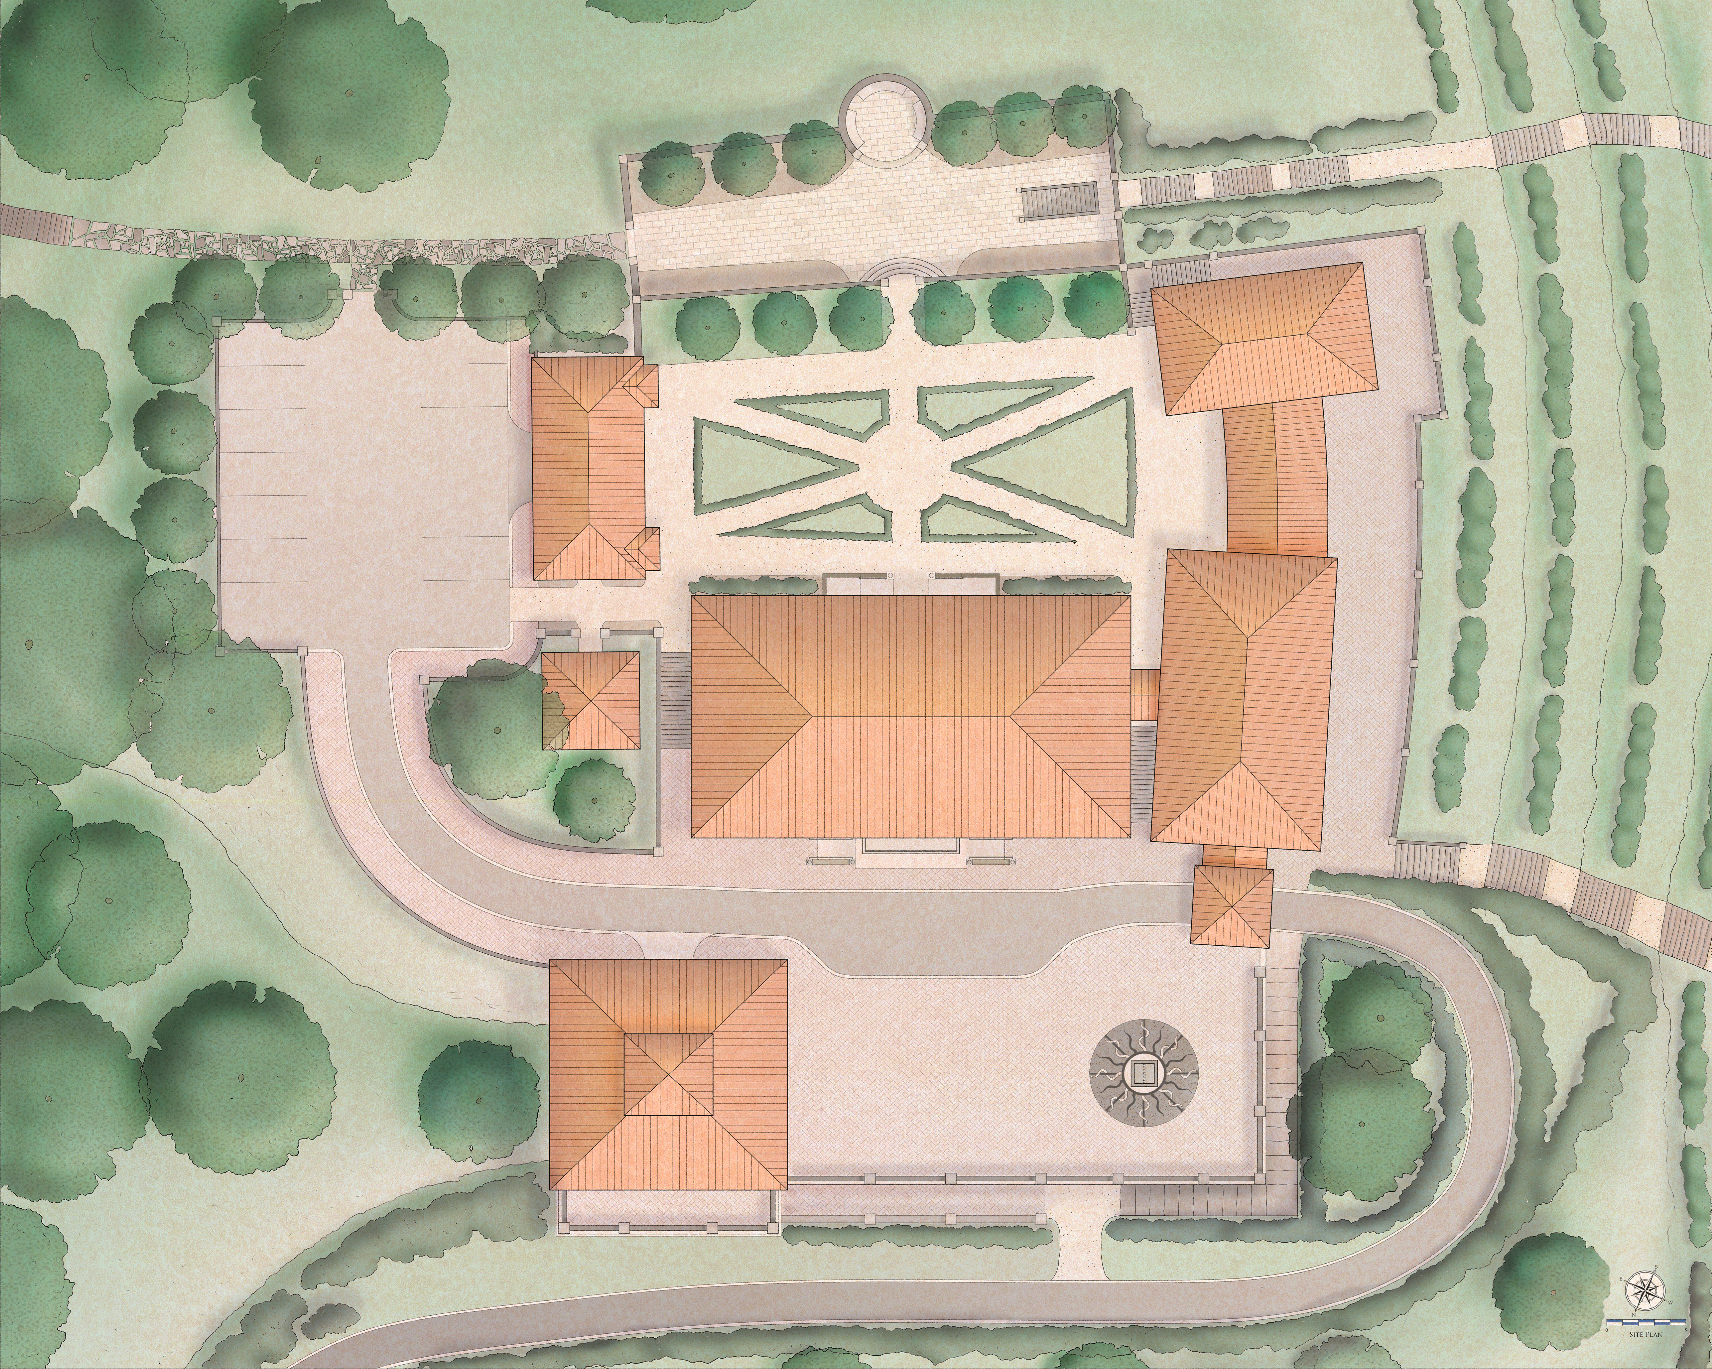 Winery Site Plan